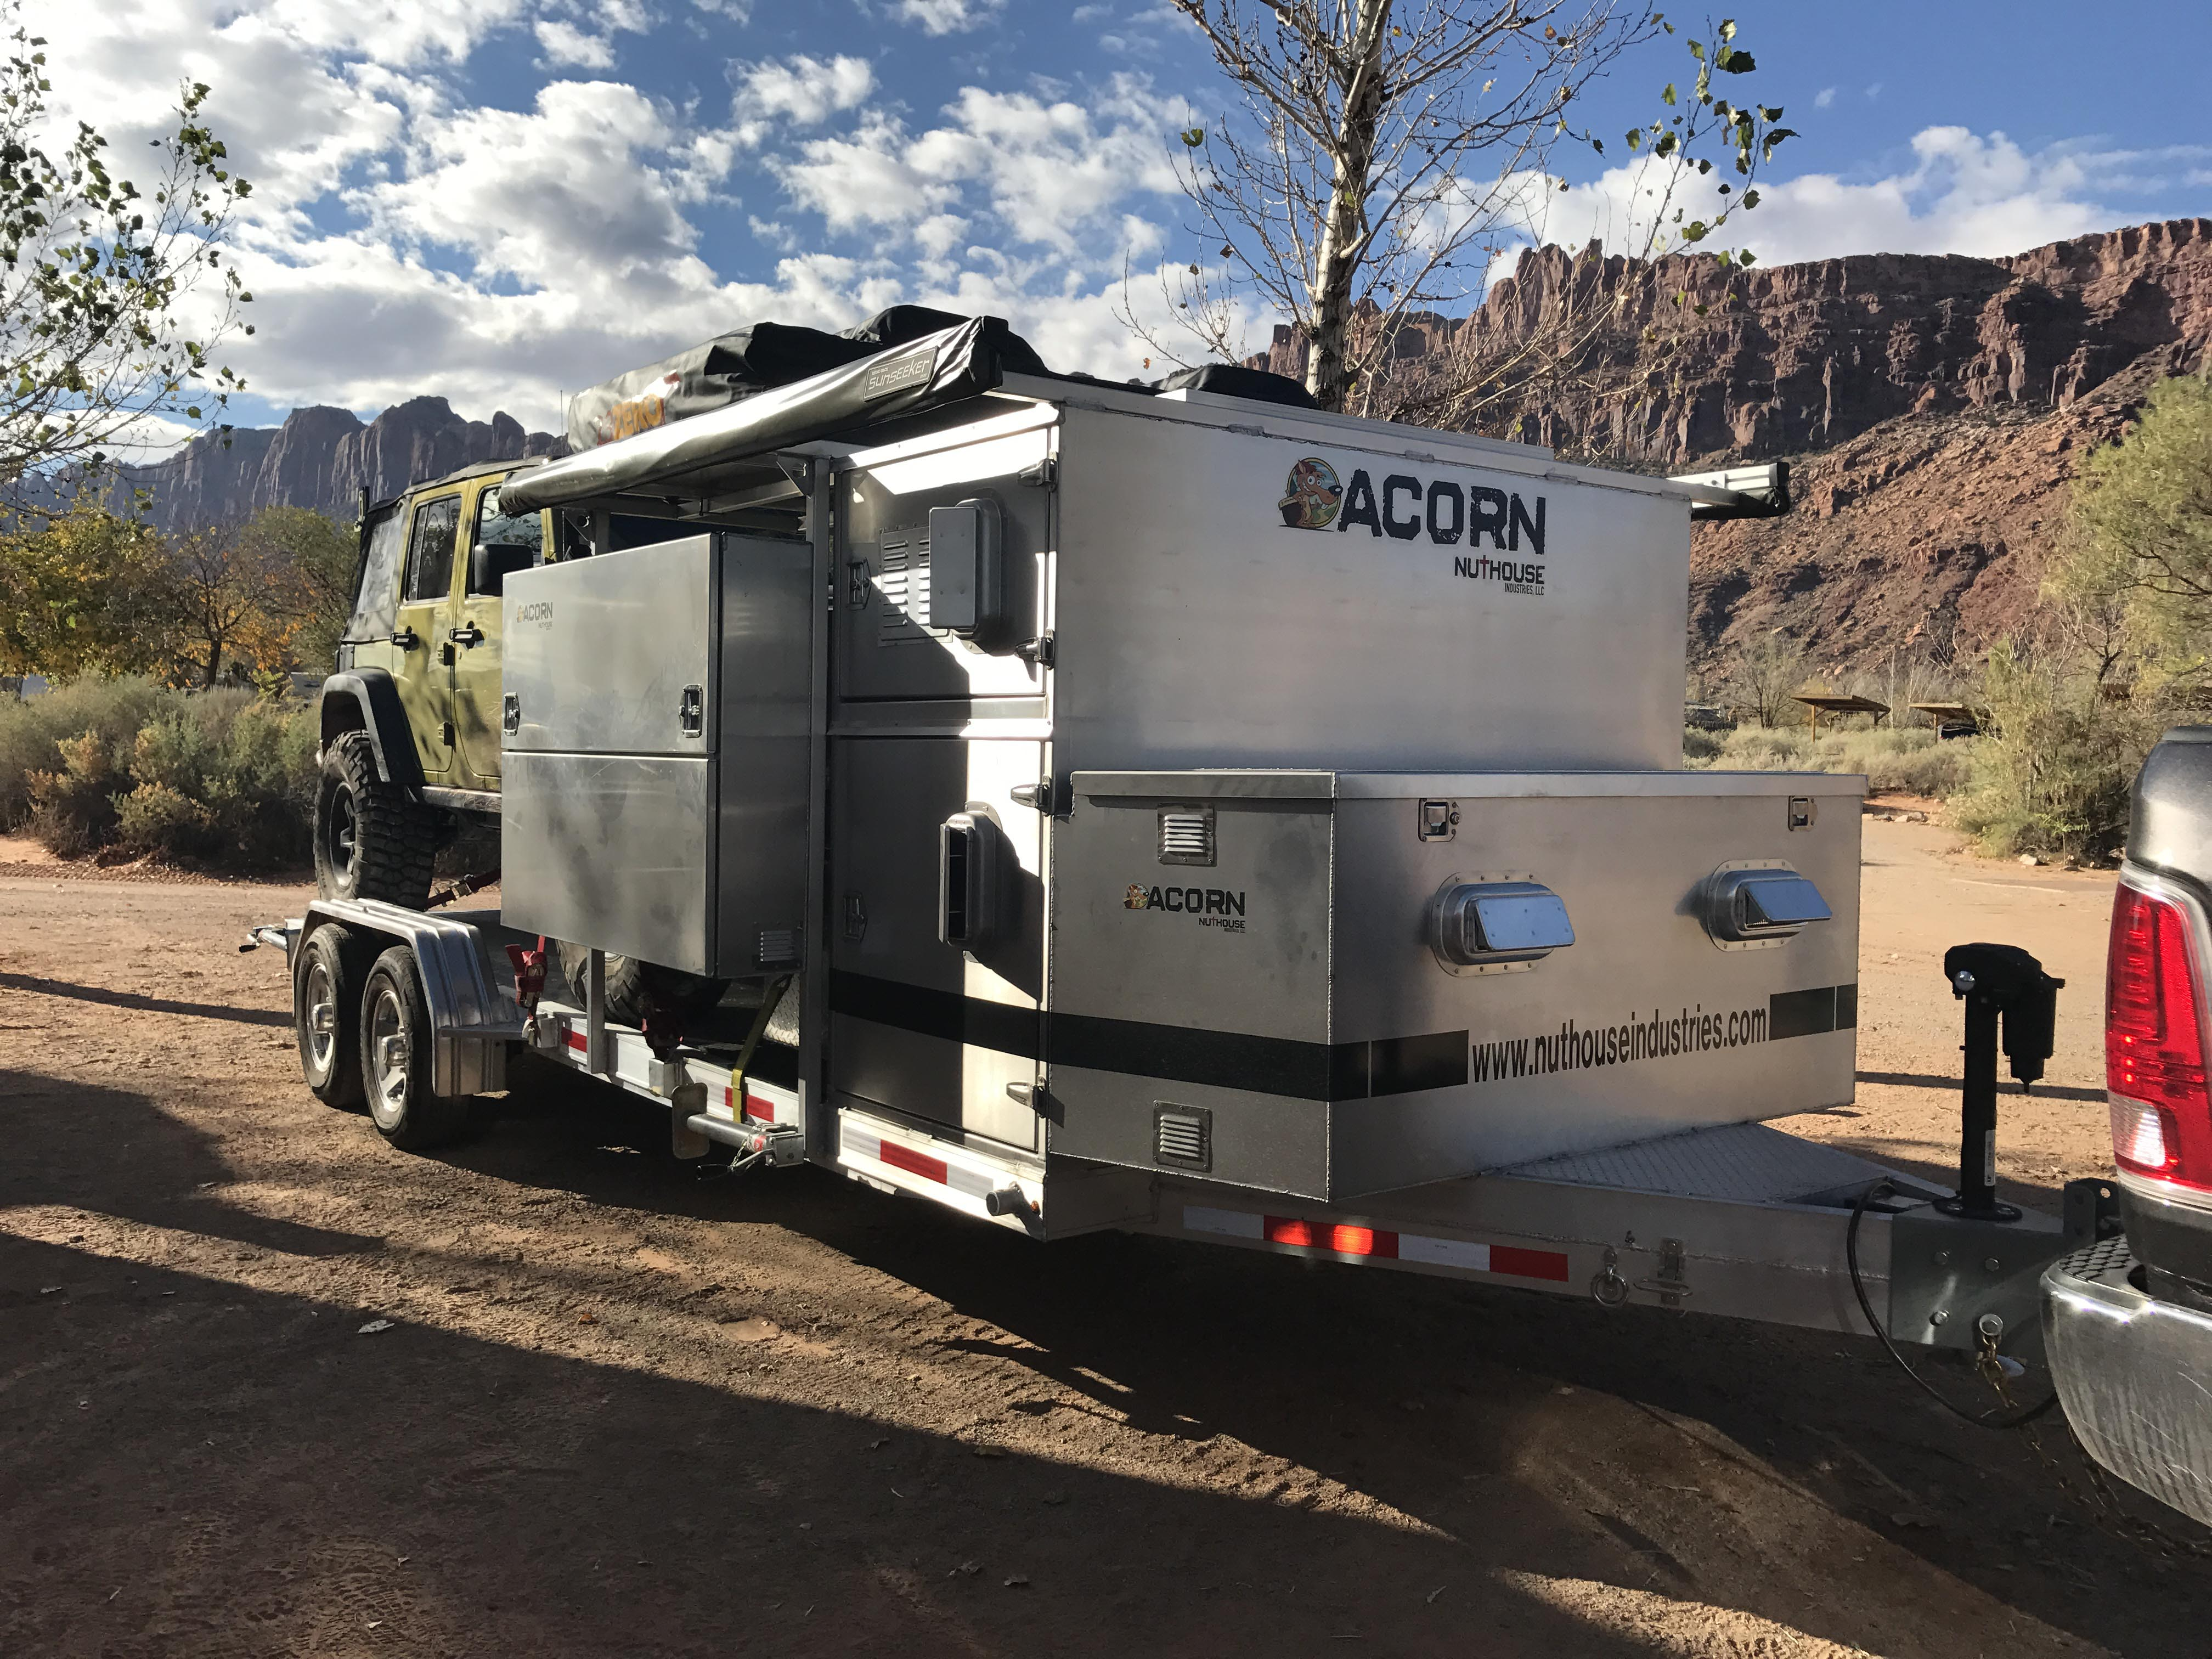 Acorn Hd Expedition Trailer Nuthouse Industries